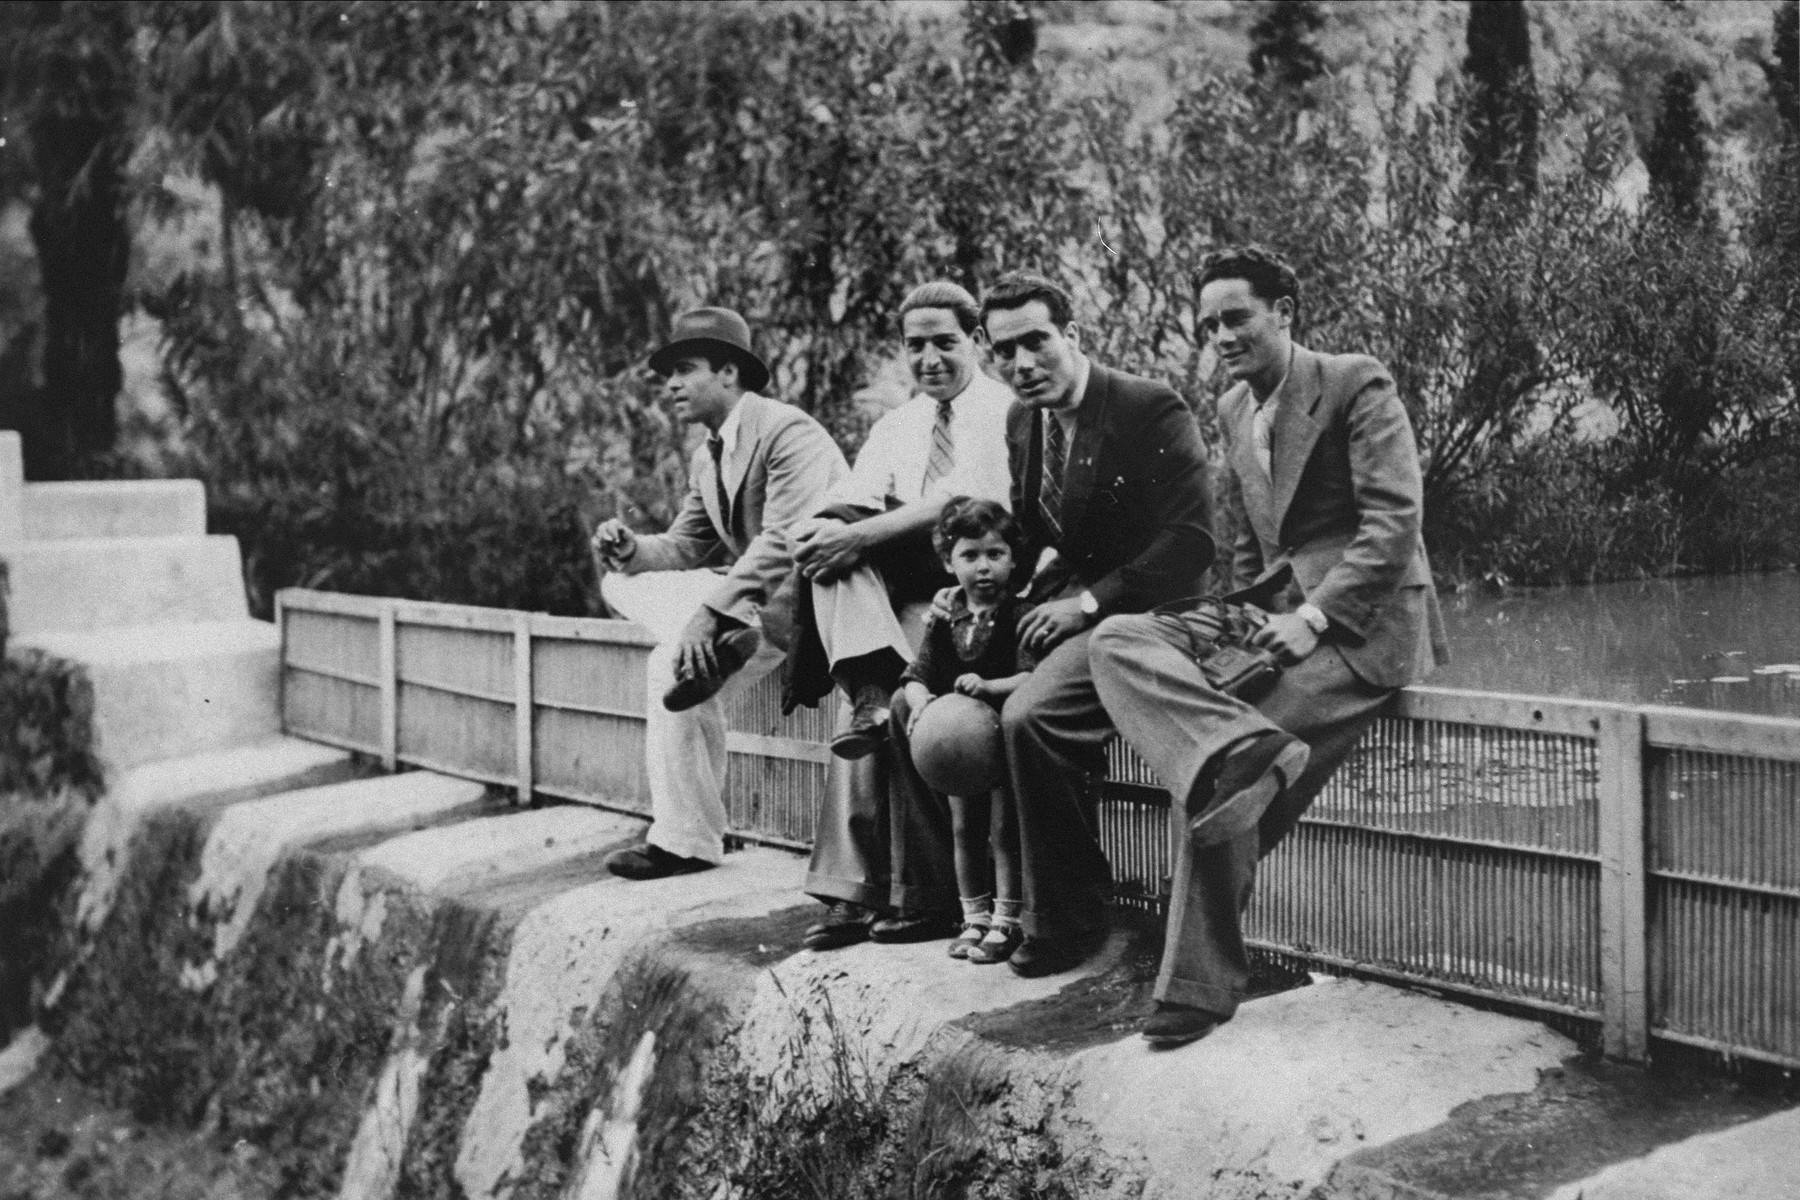 Joseph Levi, Yosef Alcana, and two other young men sit on a fence with a young child in a park.    Yosef and Joseph were both deported to Auschwitz.  Alcana perished, but Levi, a champion boxer, survived and emigrated to Israel.